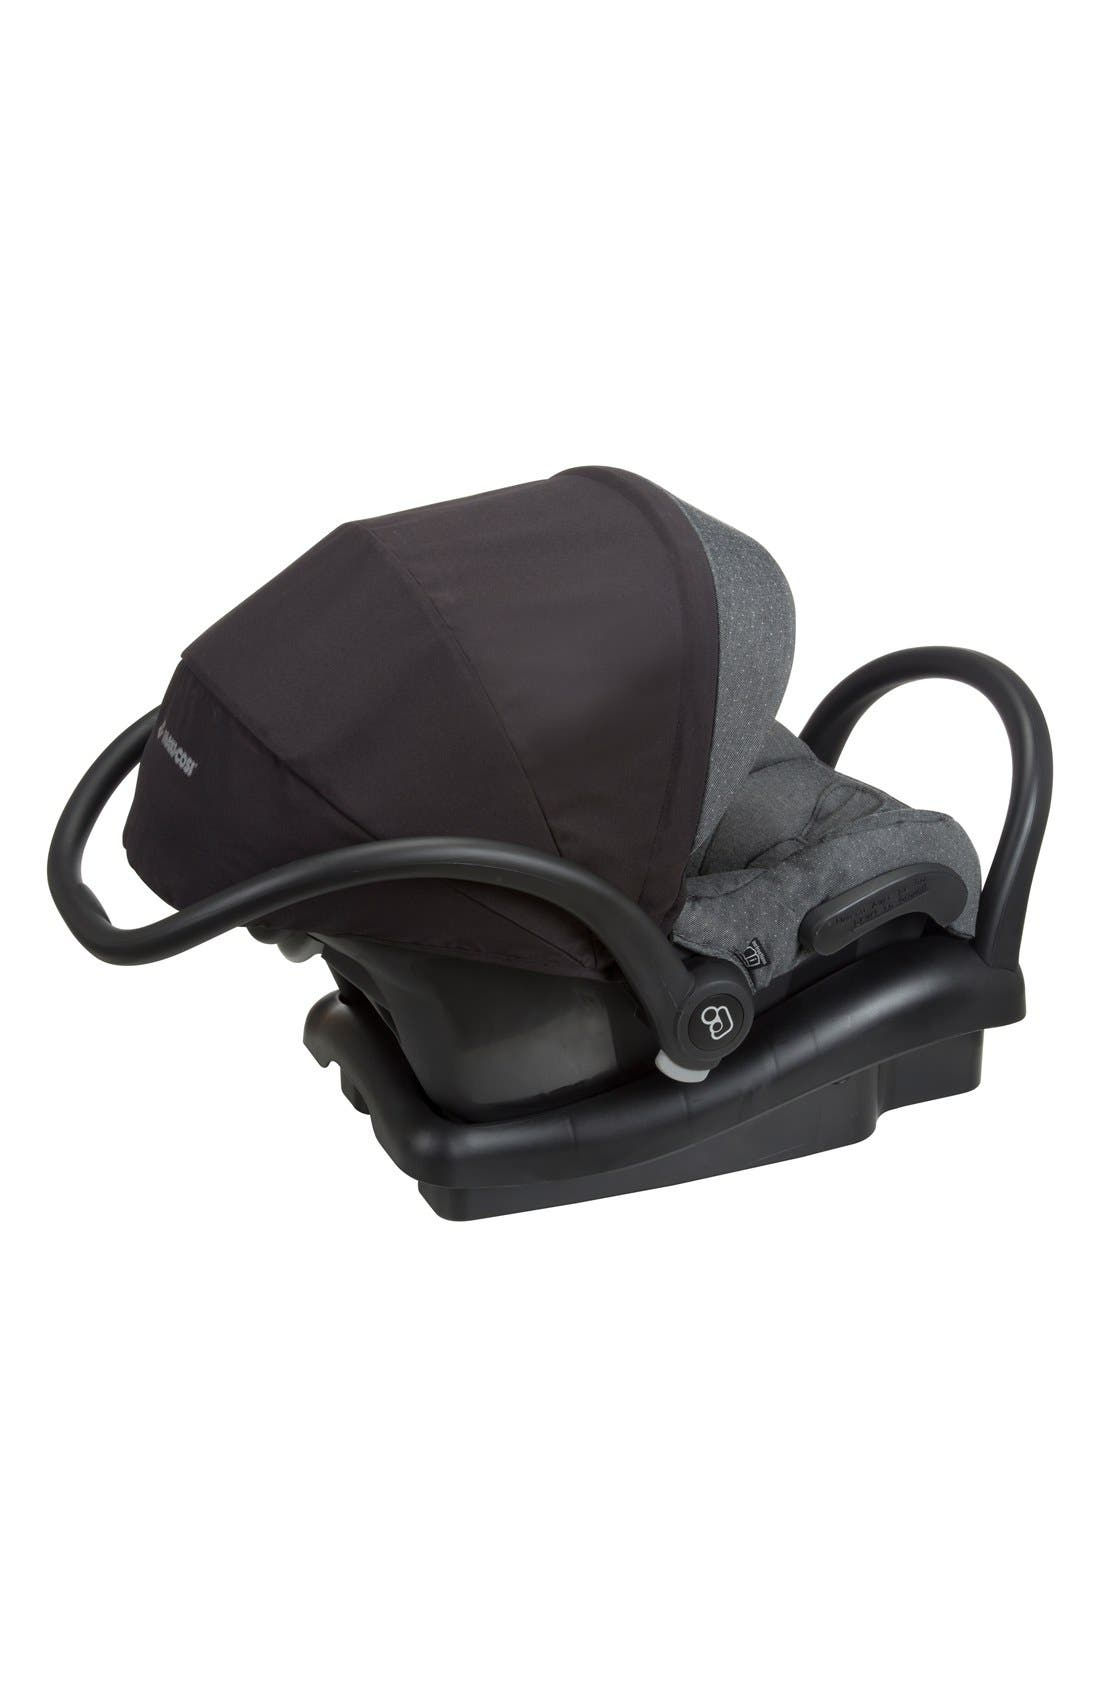 'Mico Max 30 Special Edition' Car Seat,                             Alternate thumbnail 3, color,                             027